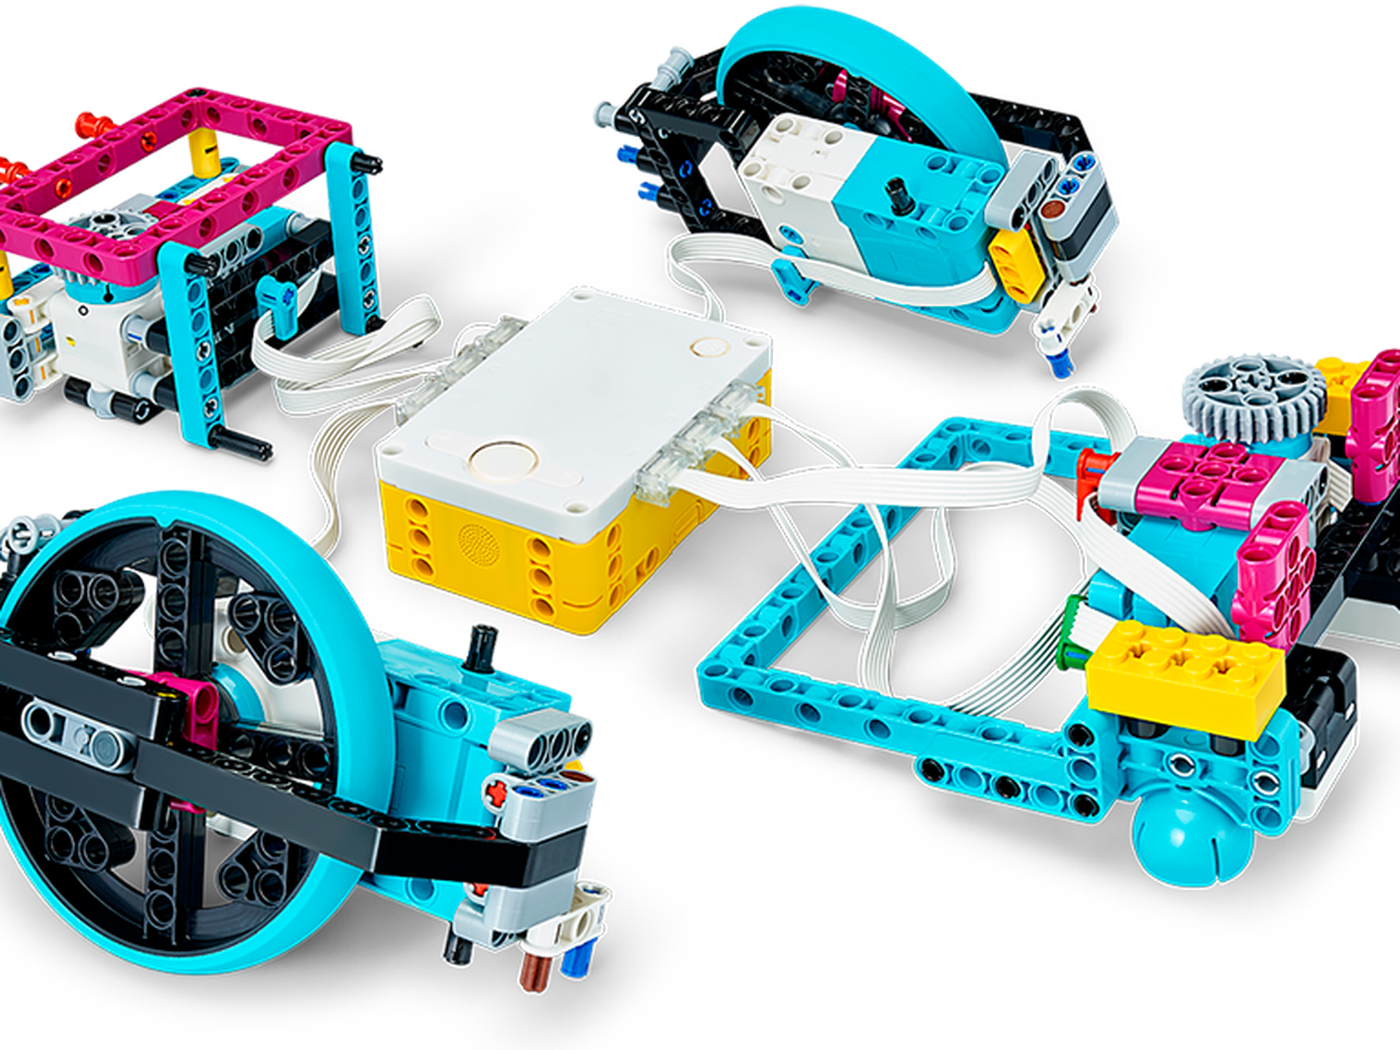 Lego's Spike Prime brings new programmable bricks to the table - The